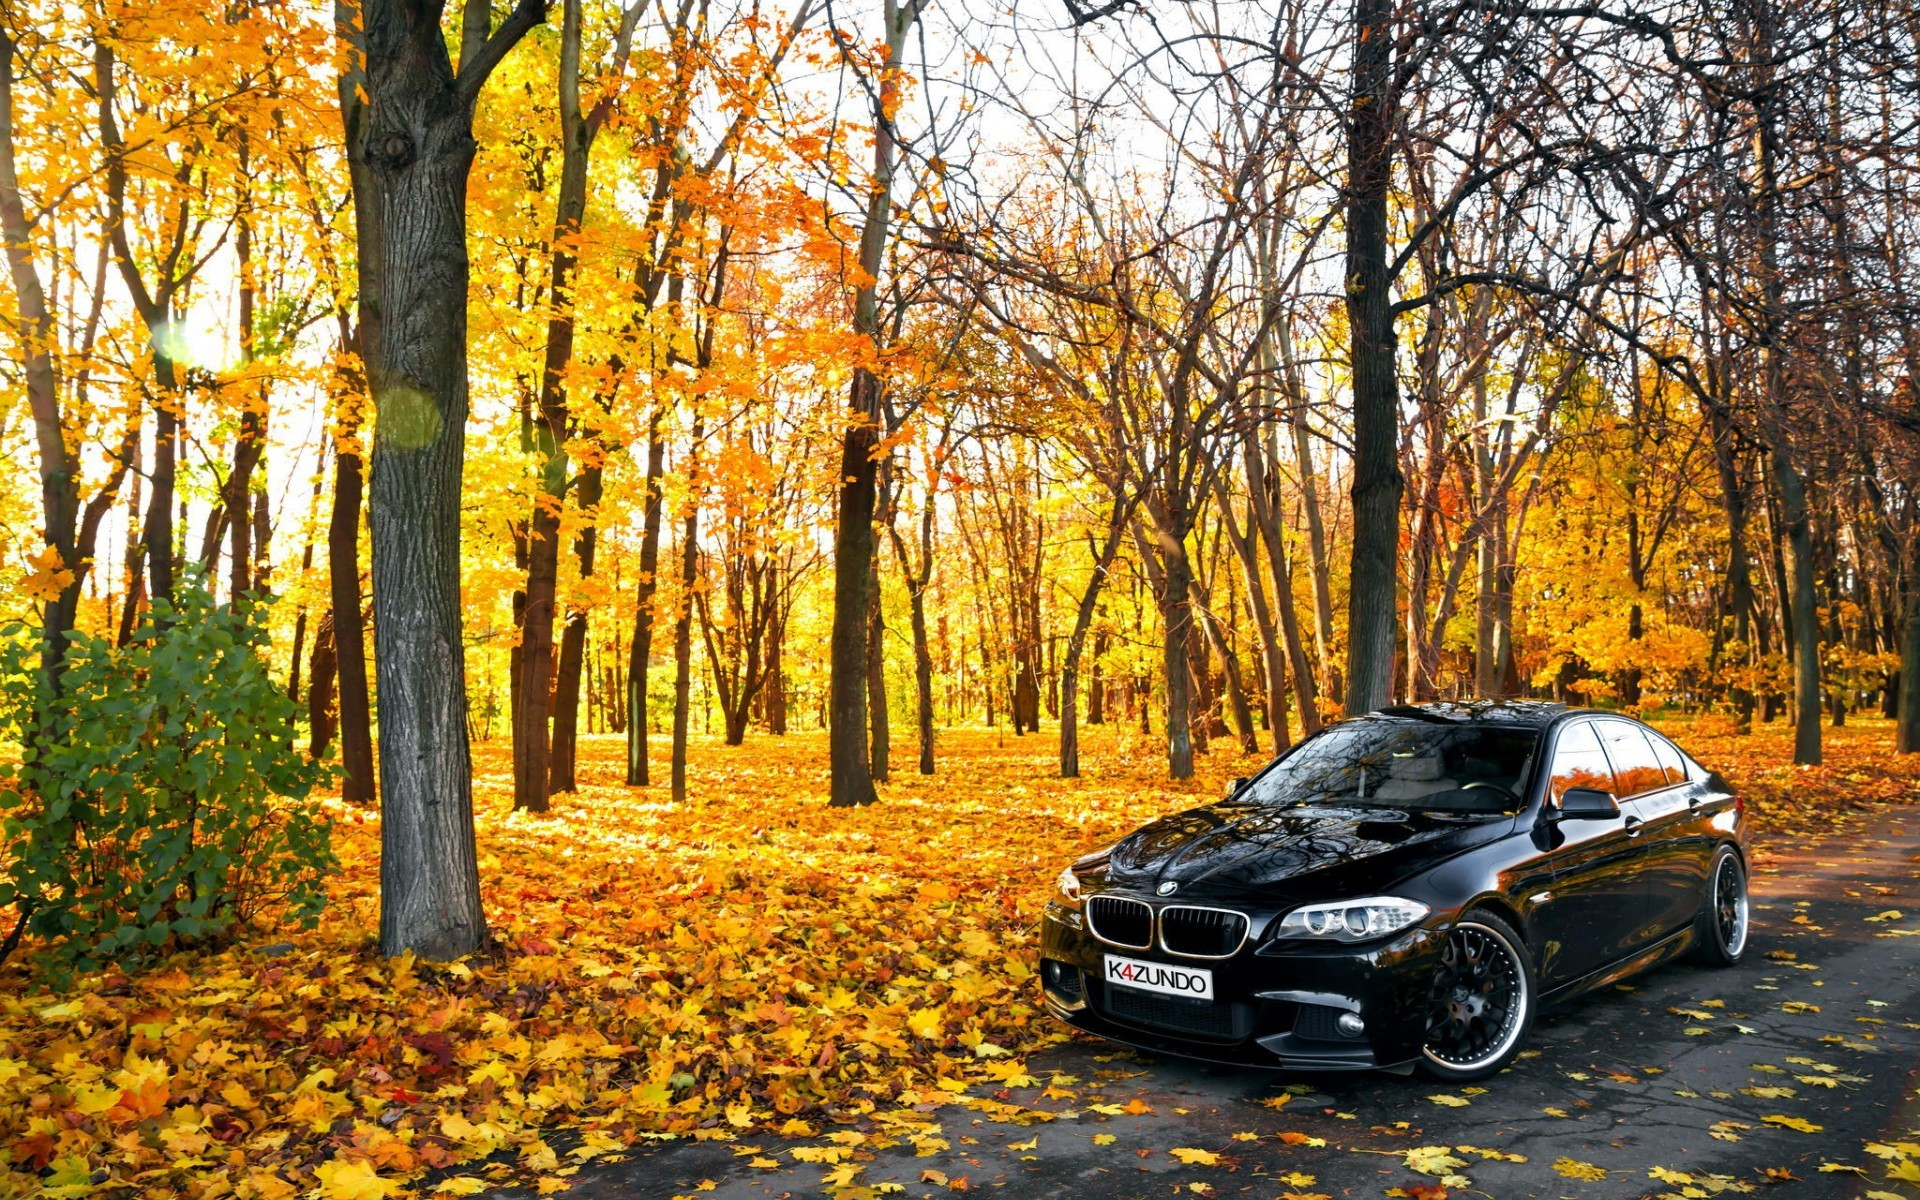 Computer Wallpaper Fall Leaves Car Bmw Leaves Trees Road Wallpapers Hd Desktop And